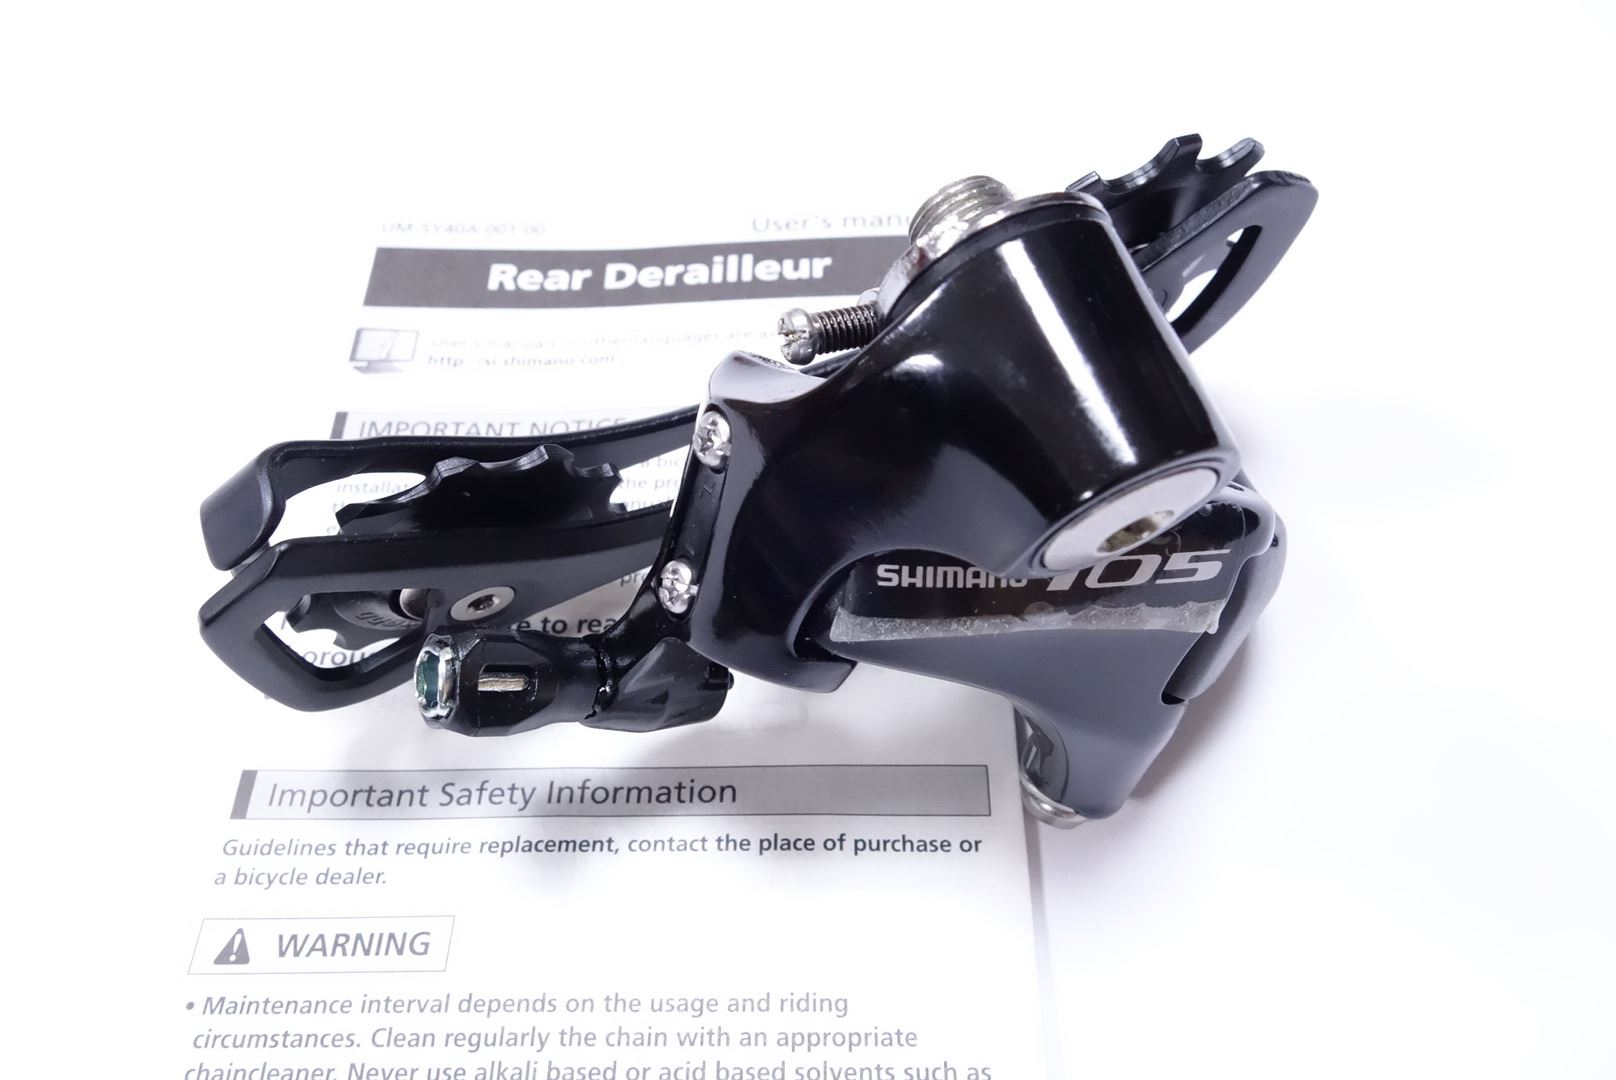 shimano 5800 rear derailleur manual